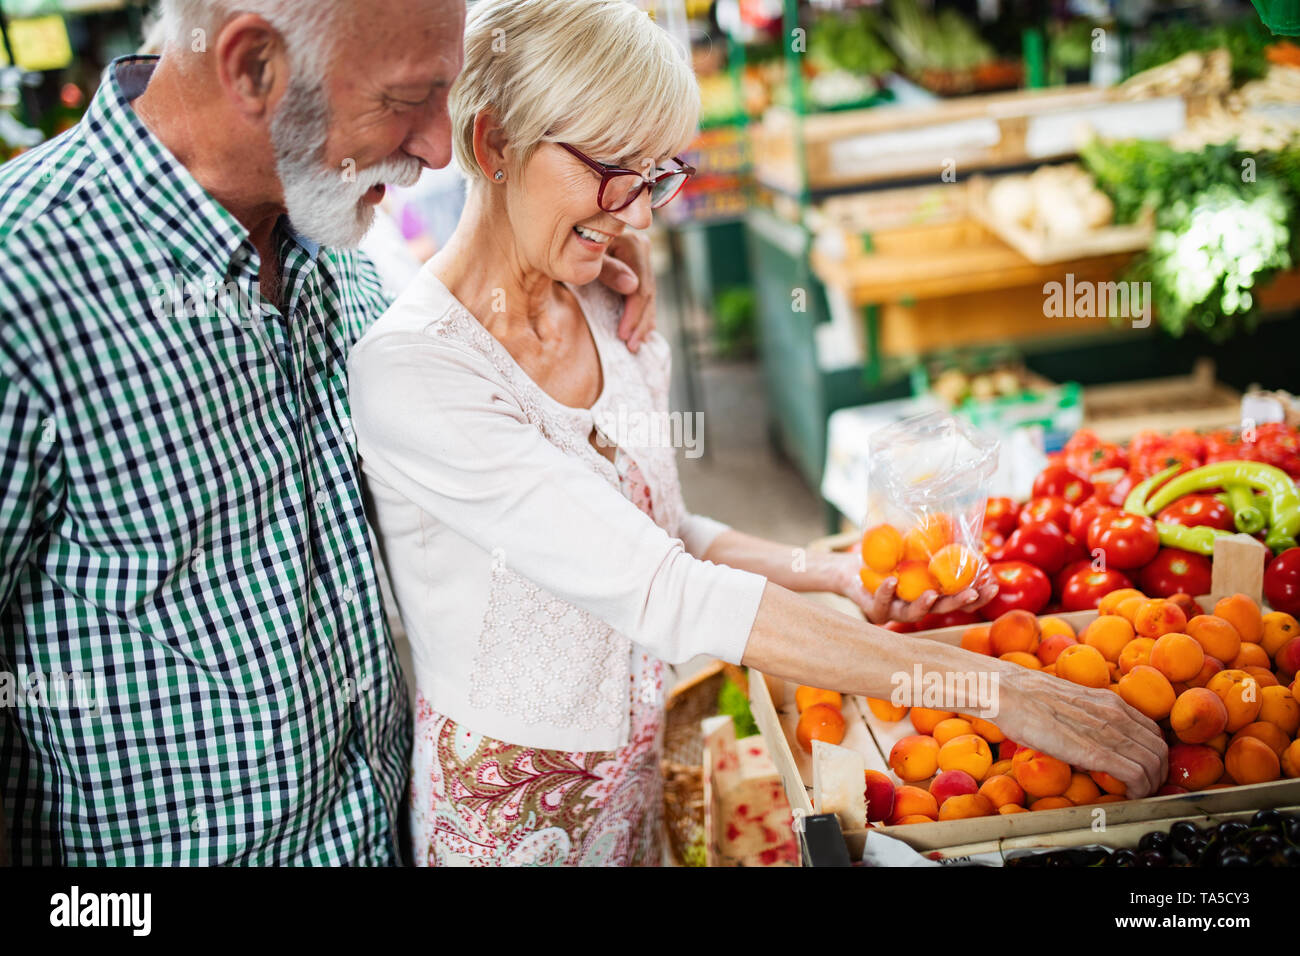 Senior shopping couple with basket on the market. Healthy diet. - Stock Image